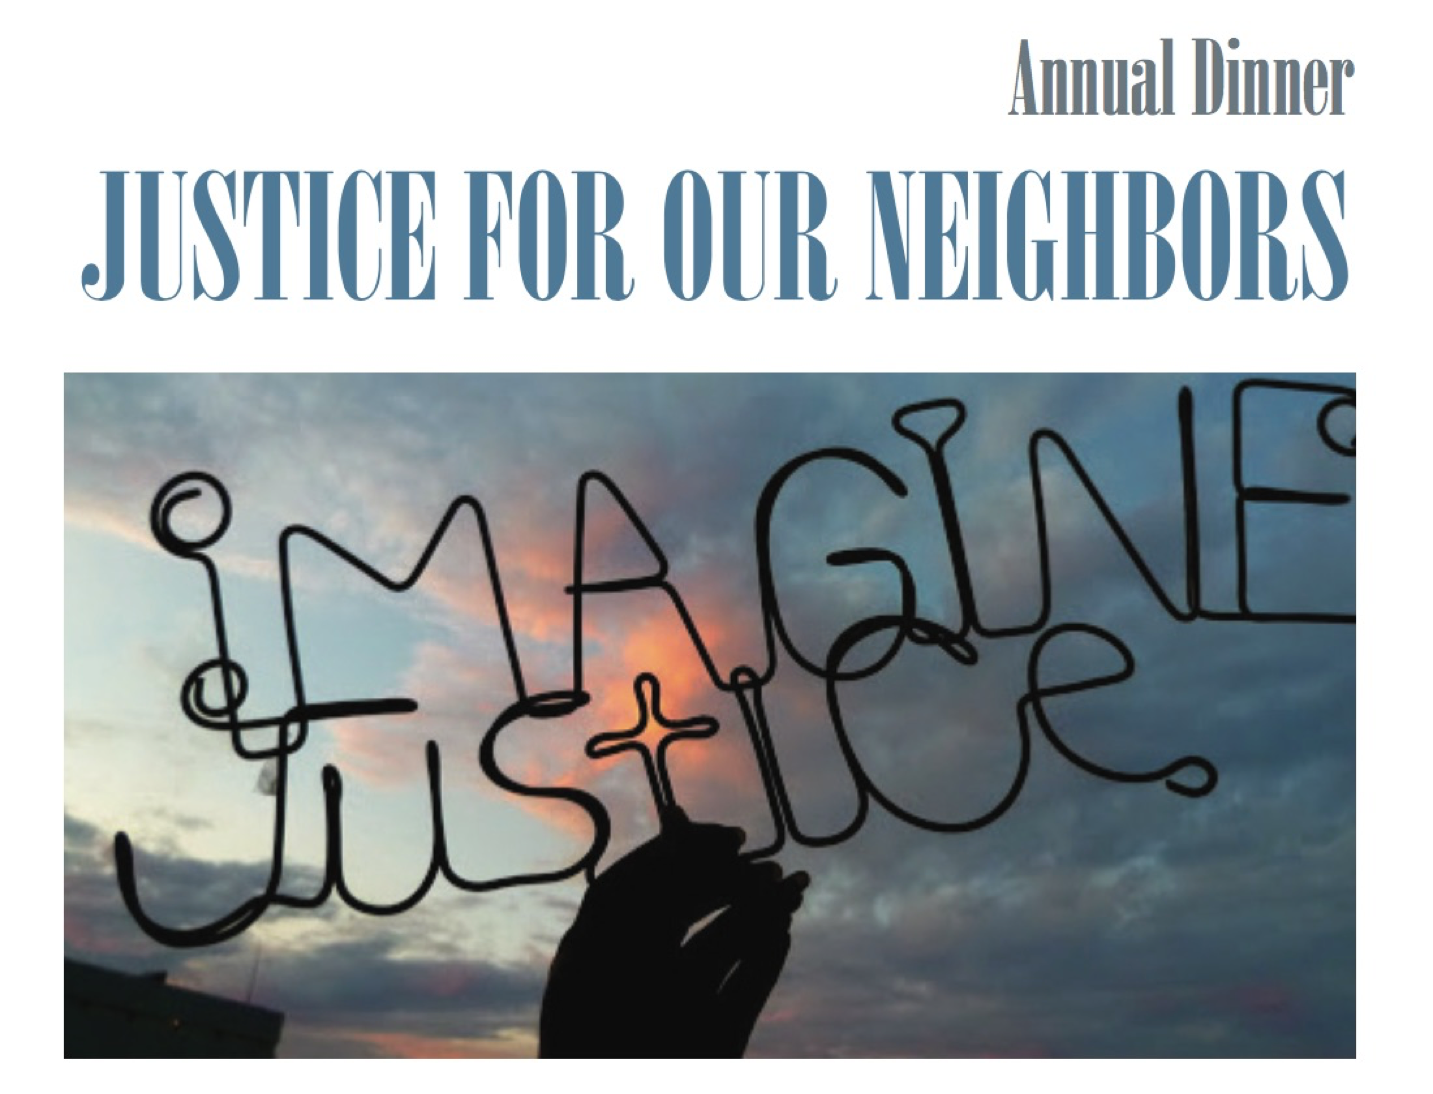 Justice For Our Neighbors Annual Dinner 2017, Image only.png